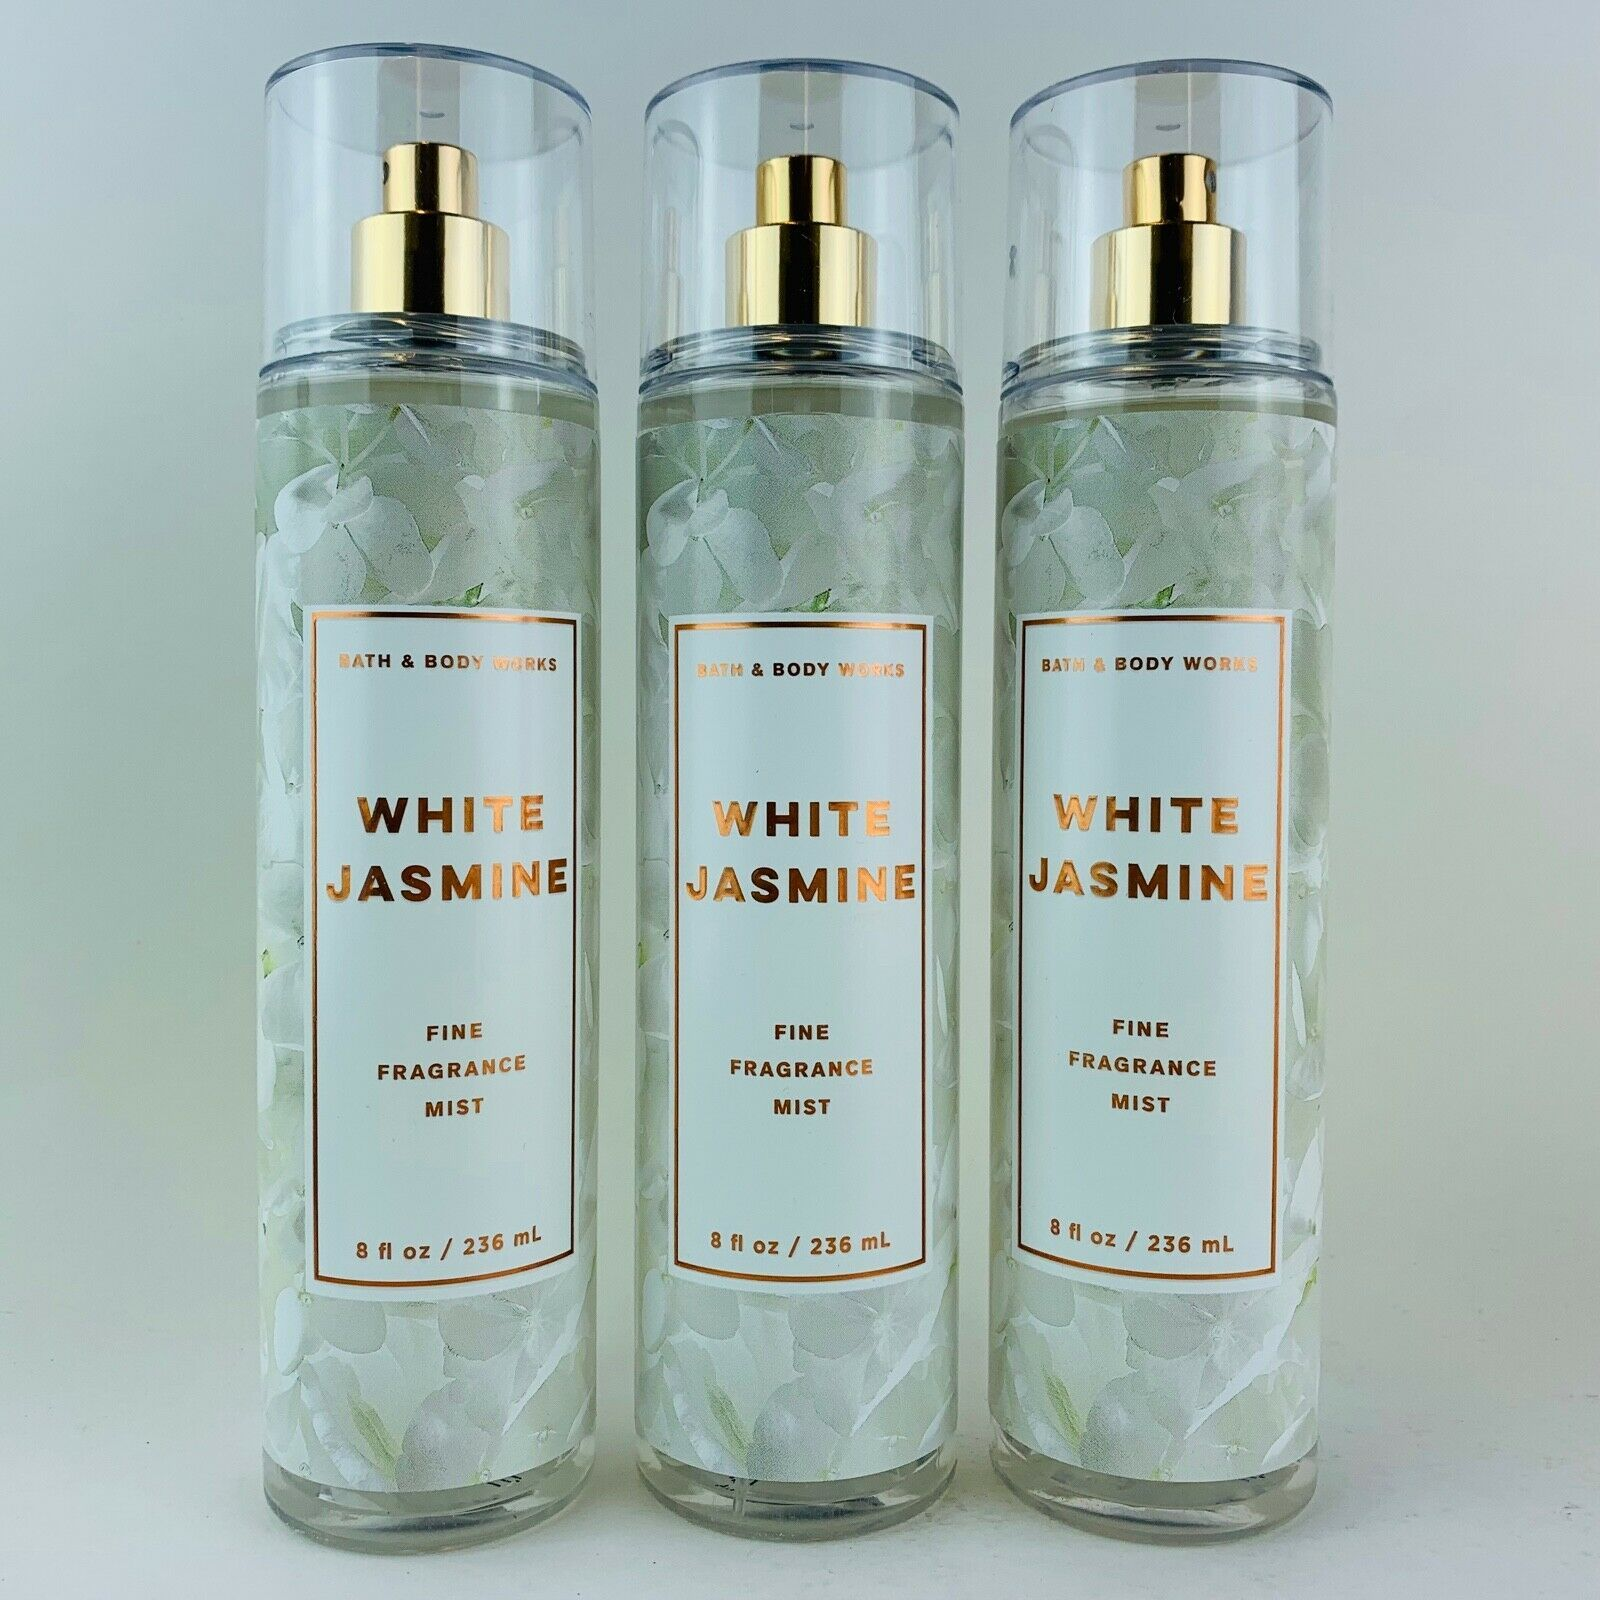 Primary image for 3 Bath & Body Works White Jasmine Fine Fragrance Mist Spray 8 fl.oz 236ml